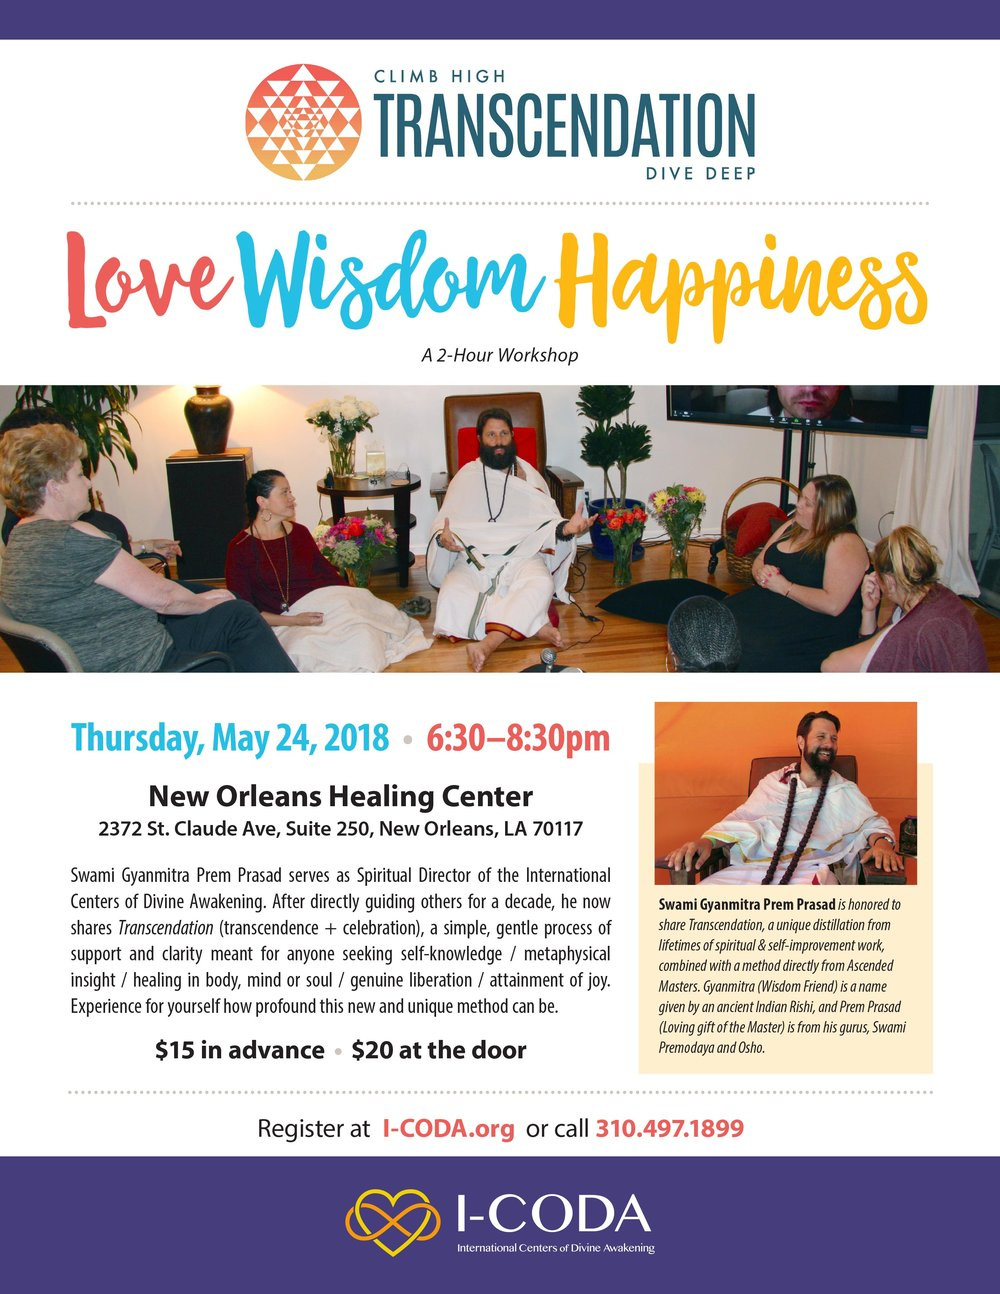 Love-Wisdom-Happiness-Flyer-041018-FOR-EMAIL.jpg